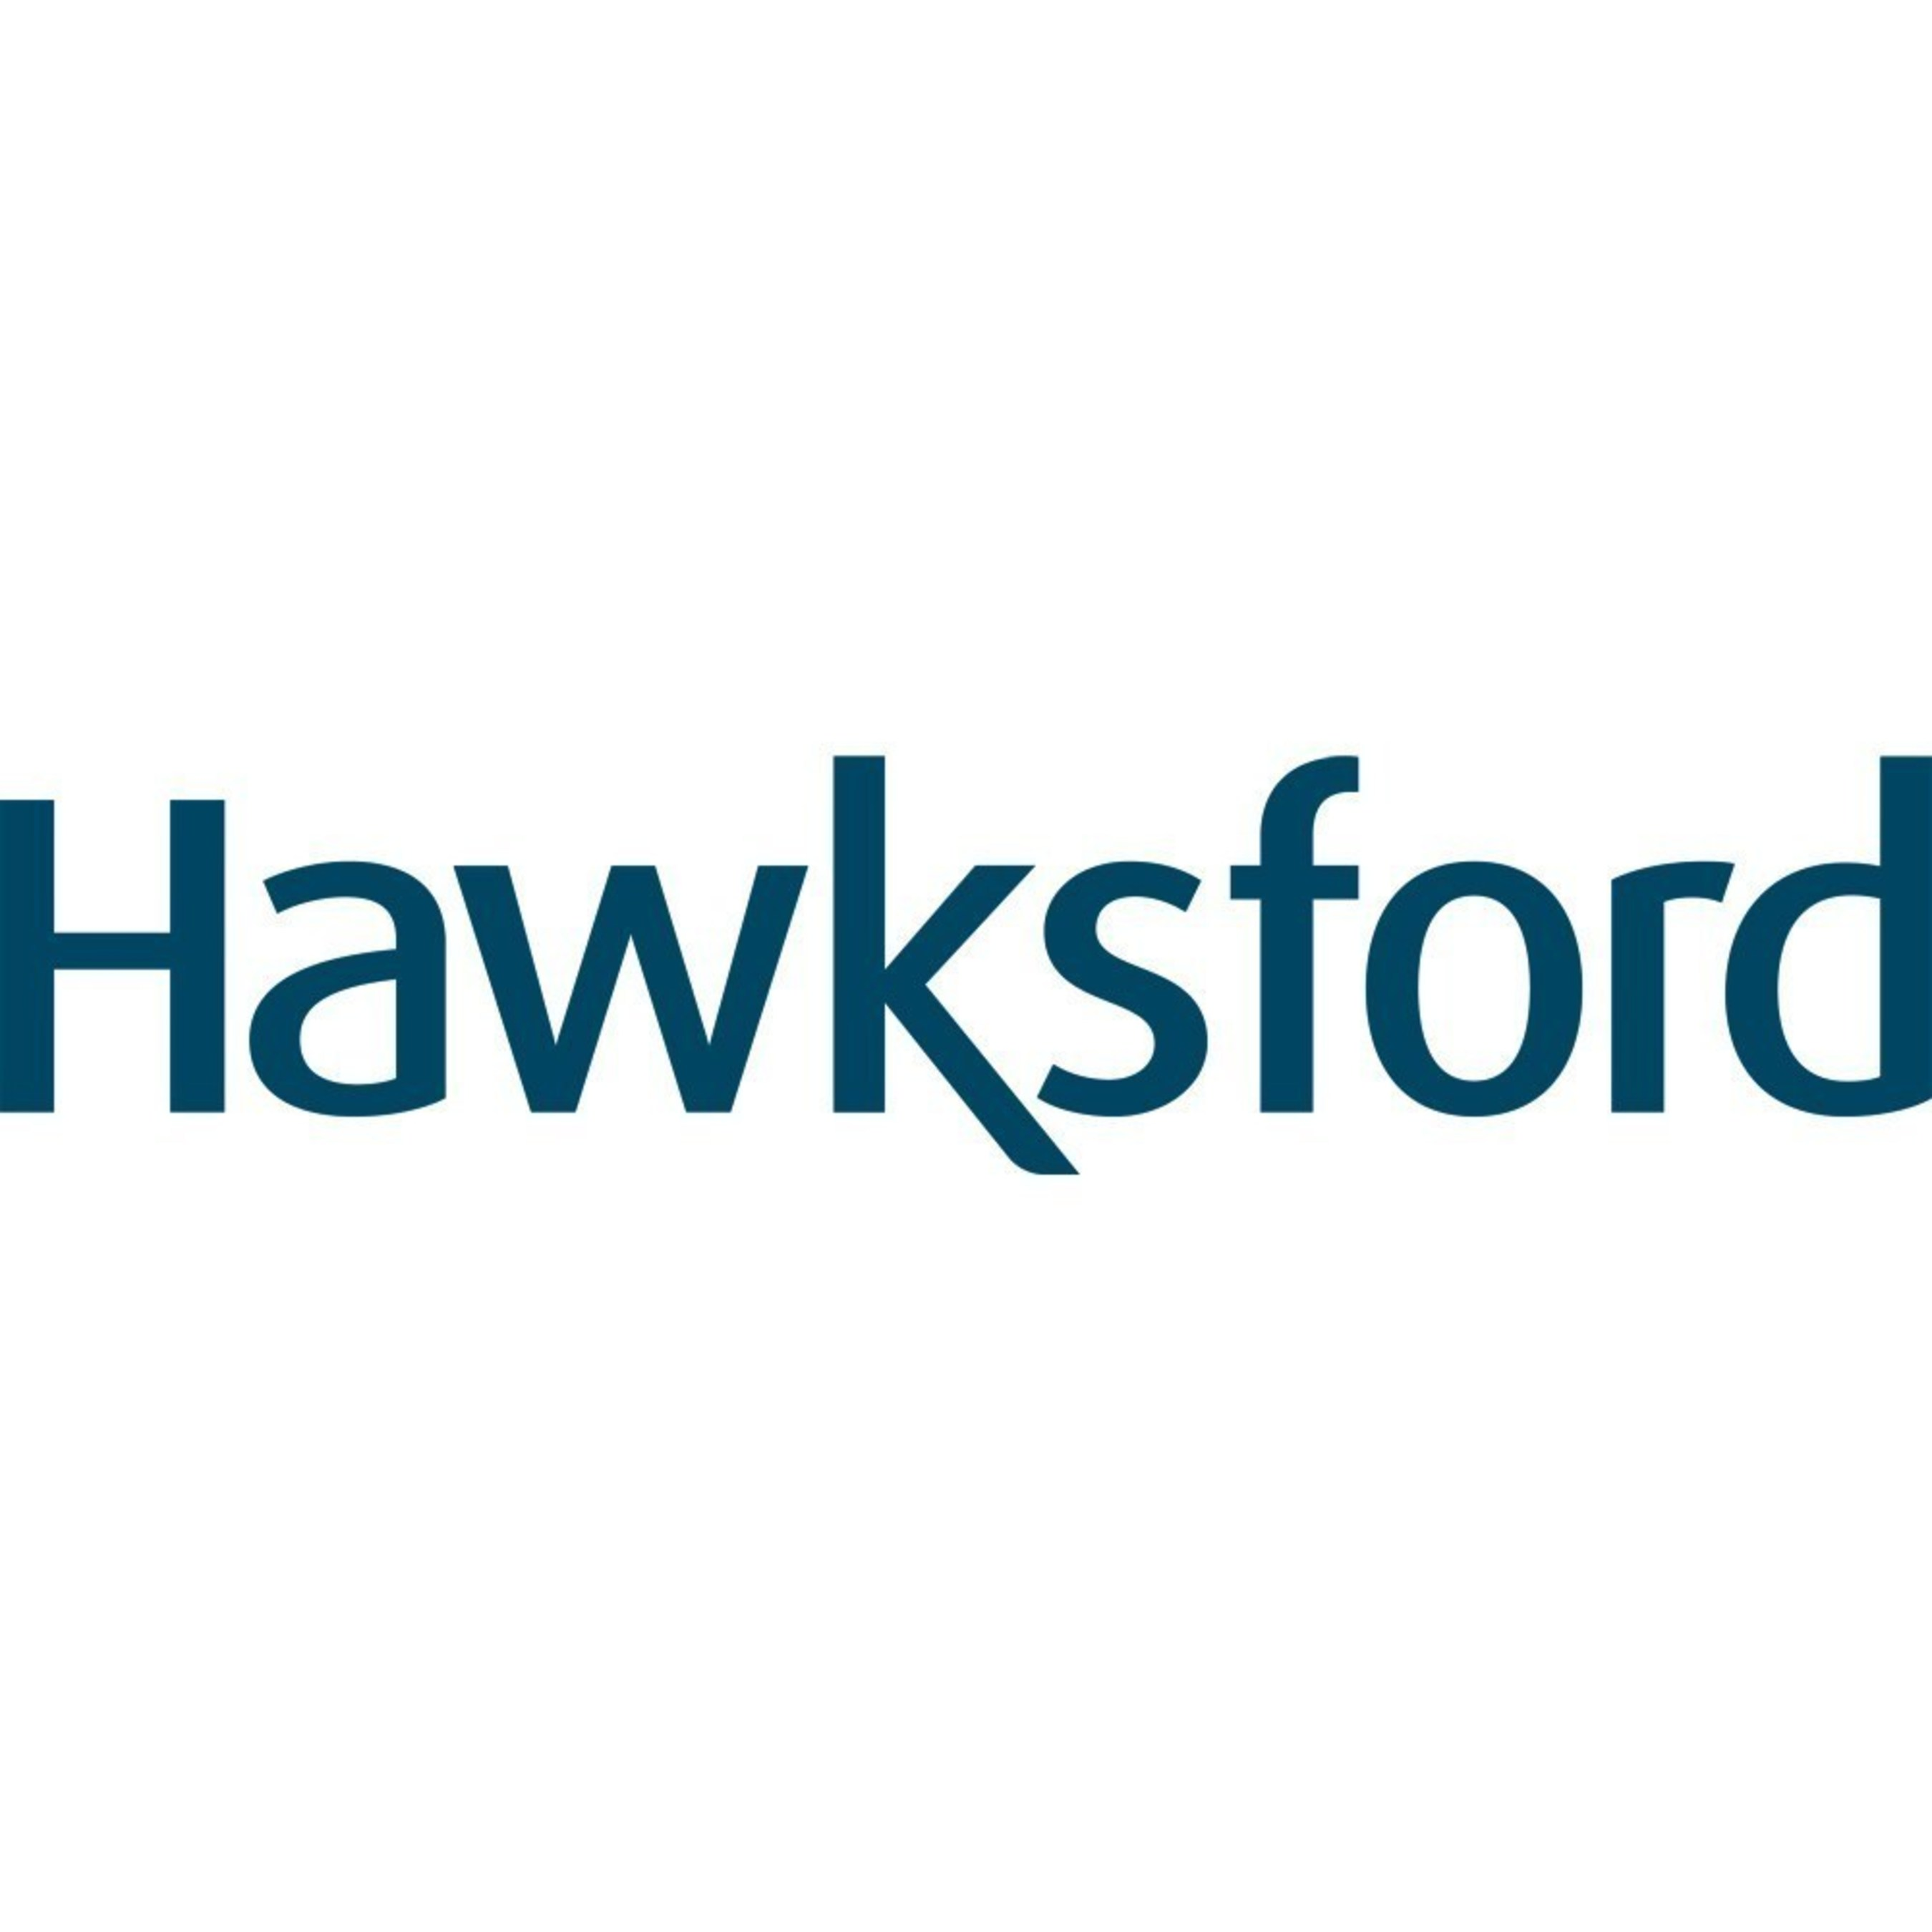 Cayman Trust Licence Enables Hawksford to Expand Presence and Global Capabilities